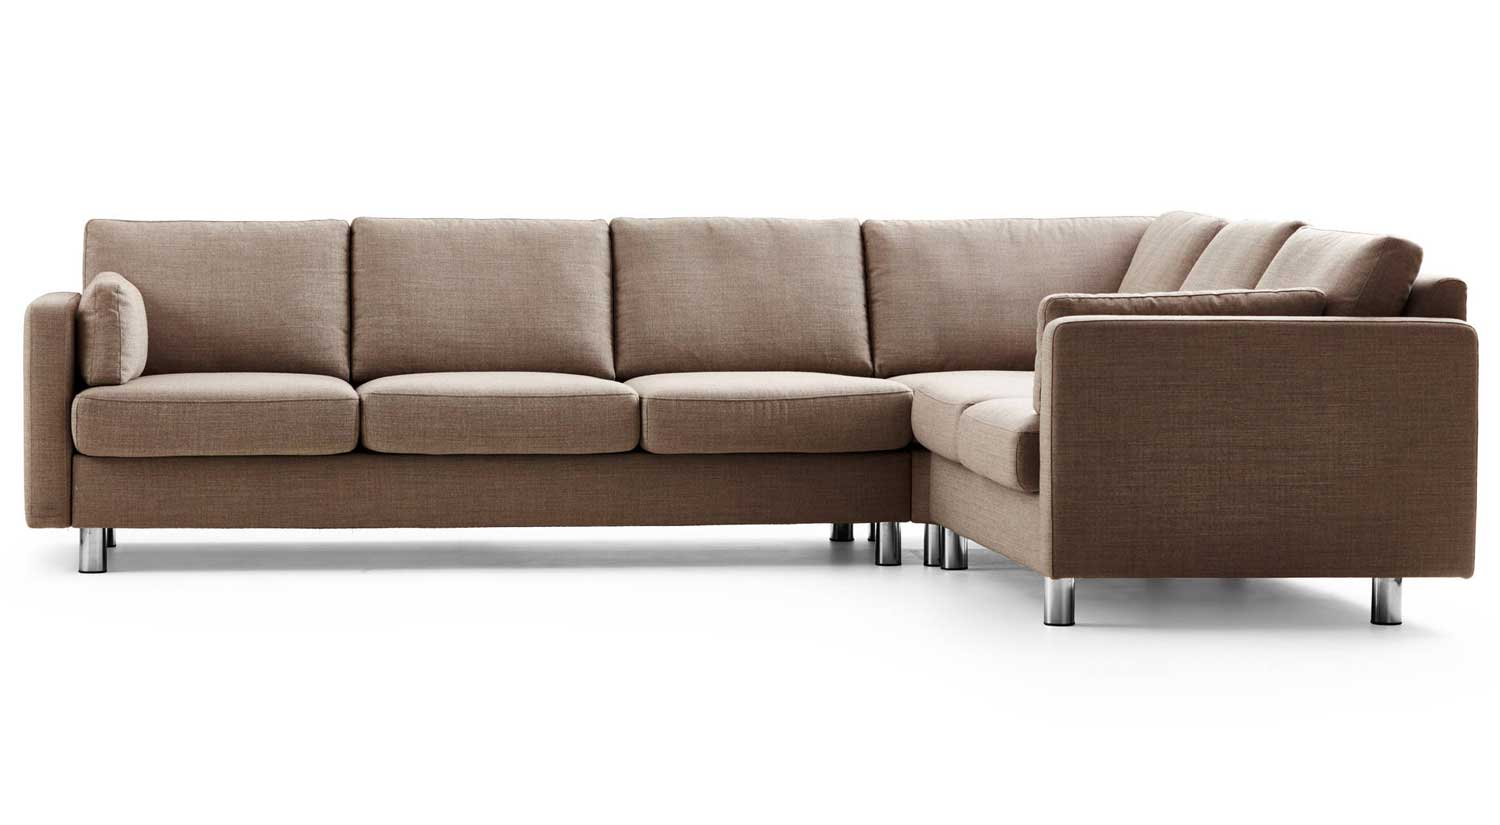 Stressless Jazz Sofa Stressless Banken Finest Image Is Loading With Stressless